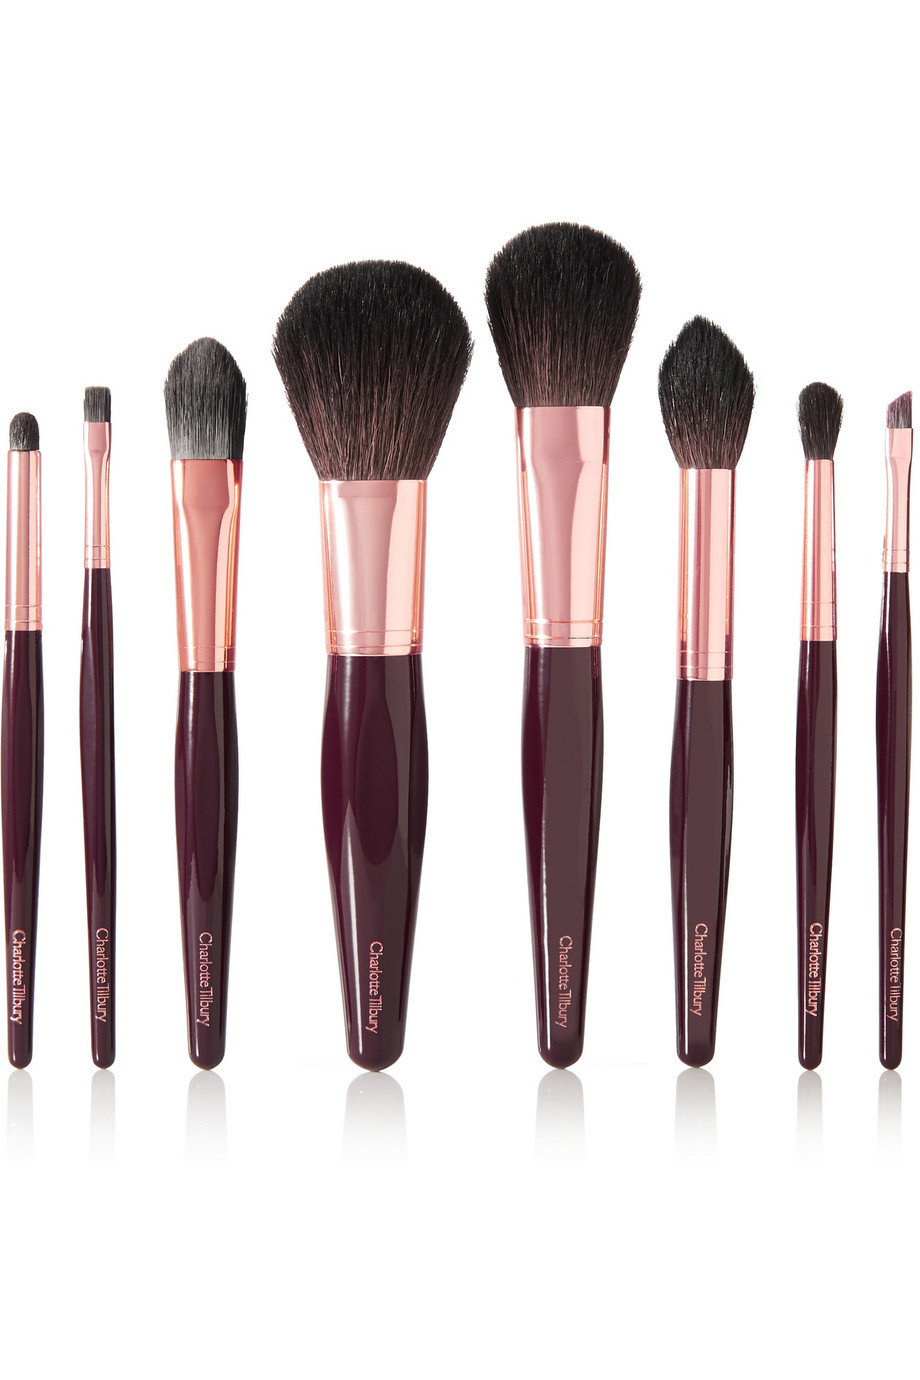 CHARLOTTE TILBURY The Complete Brush Set ブラシ8本セット